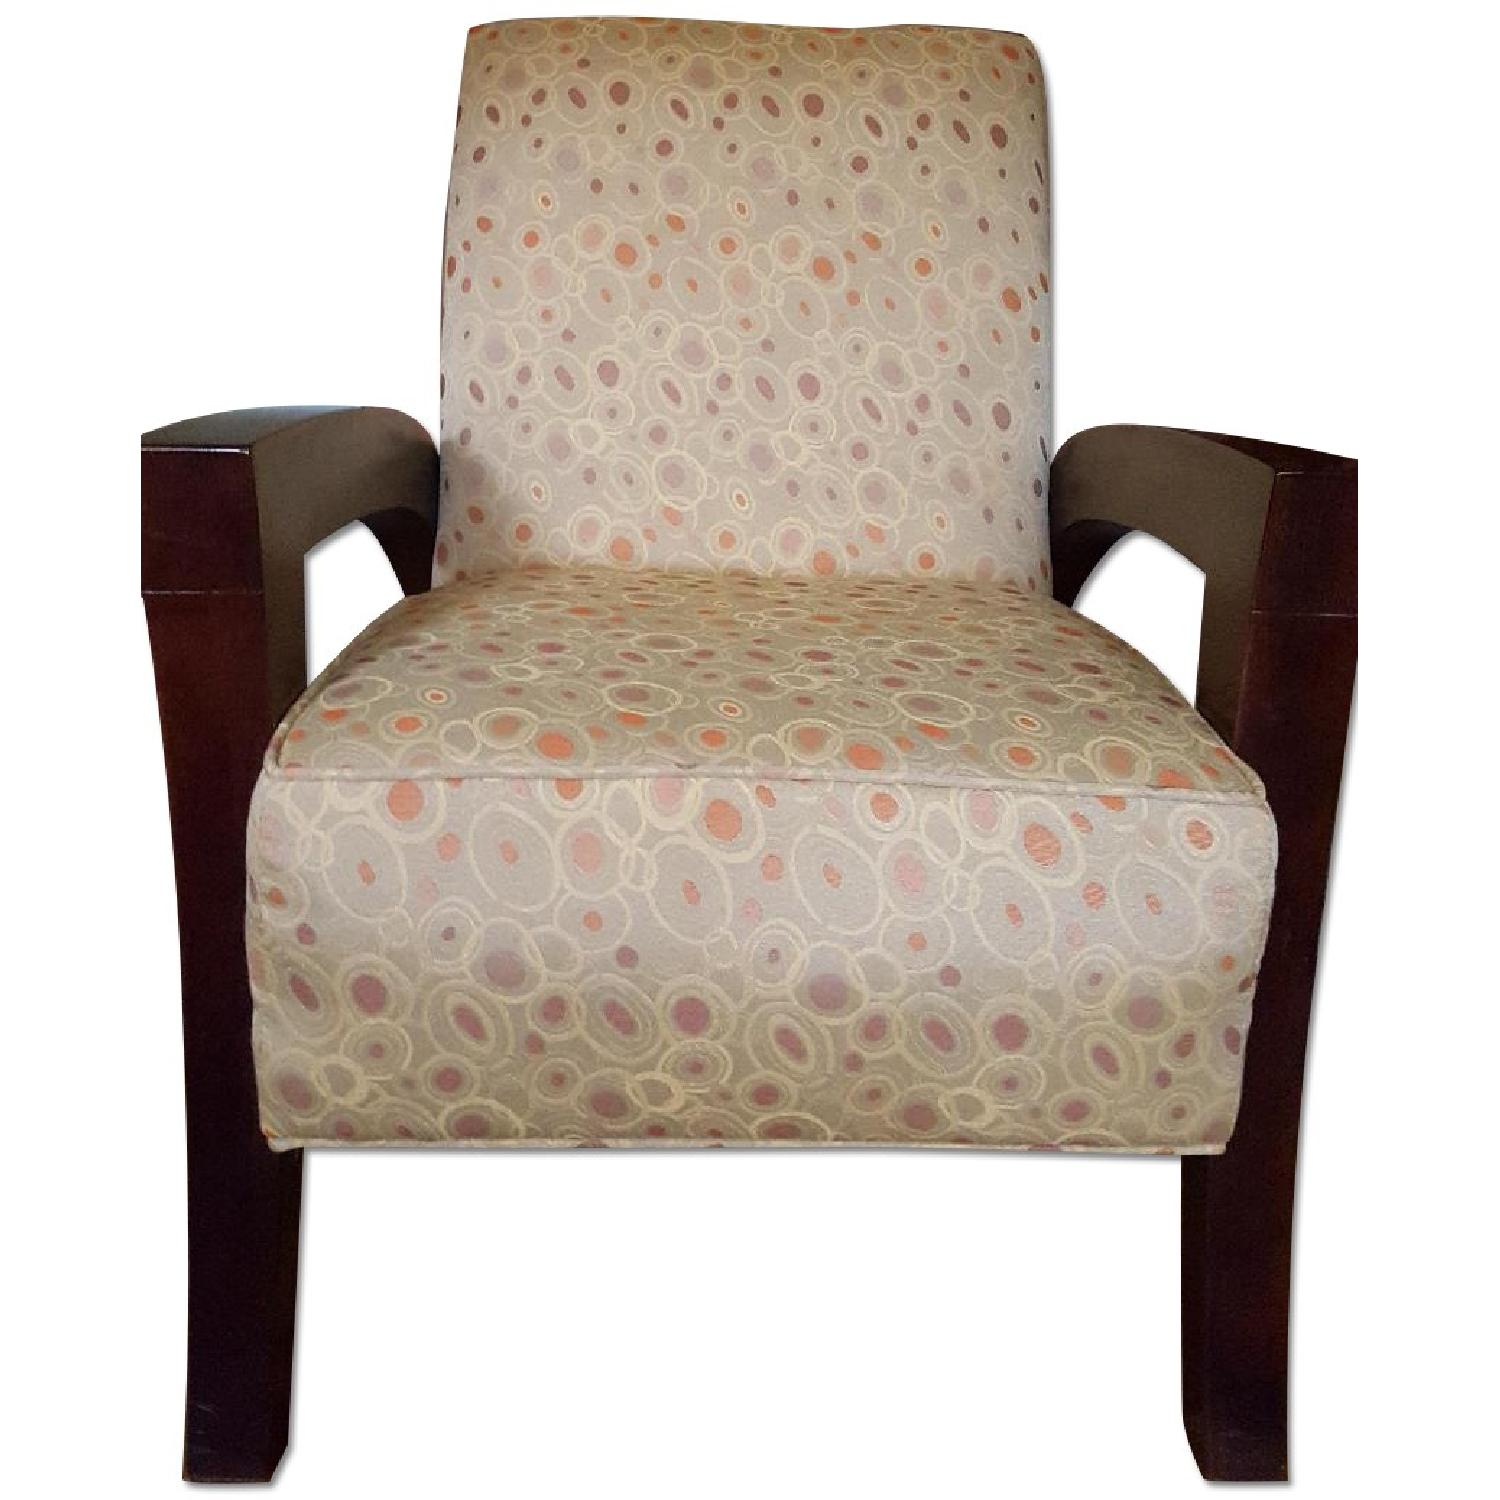 Macy's Sam Moore Accent Chairs - image-0